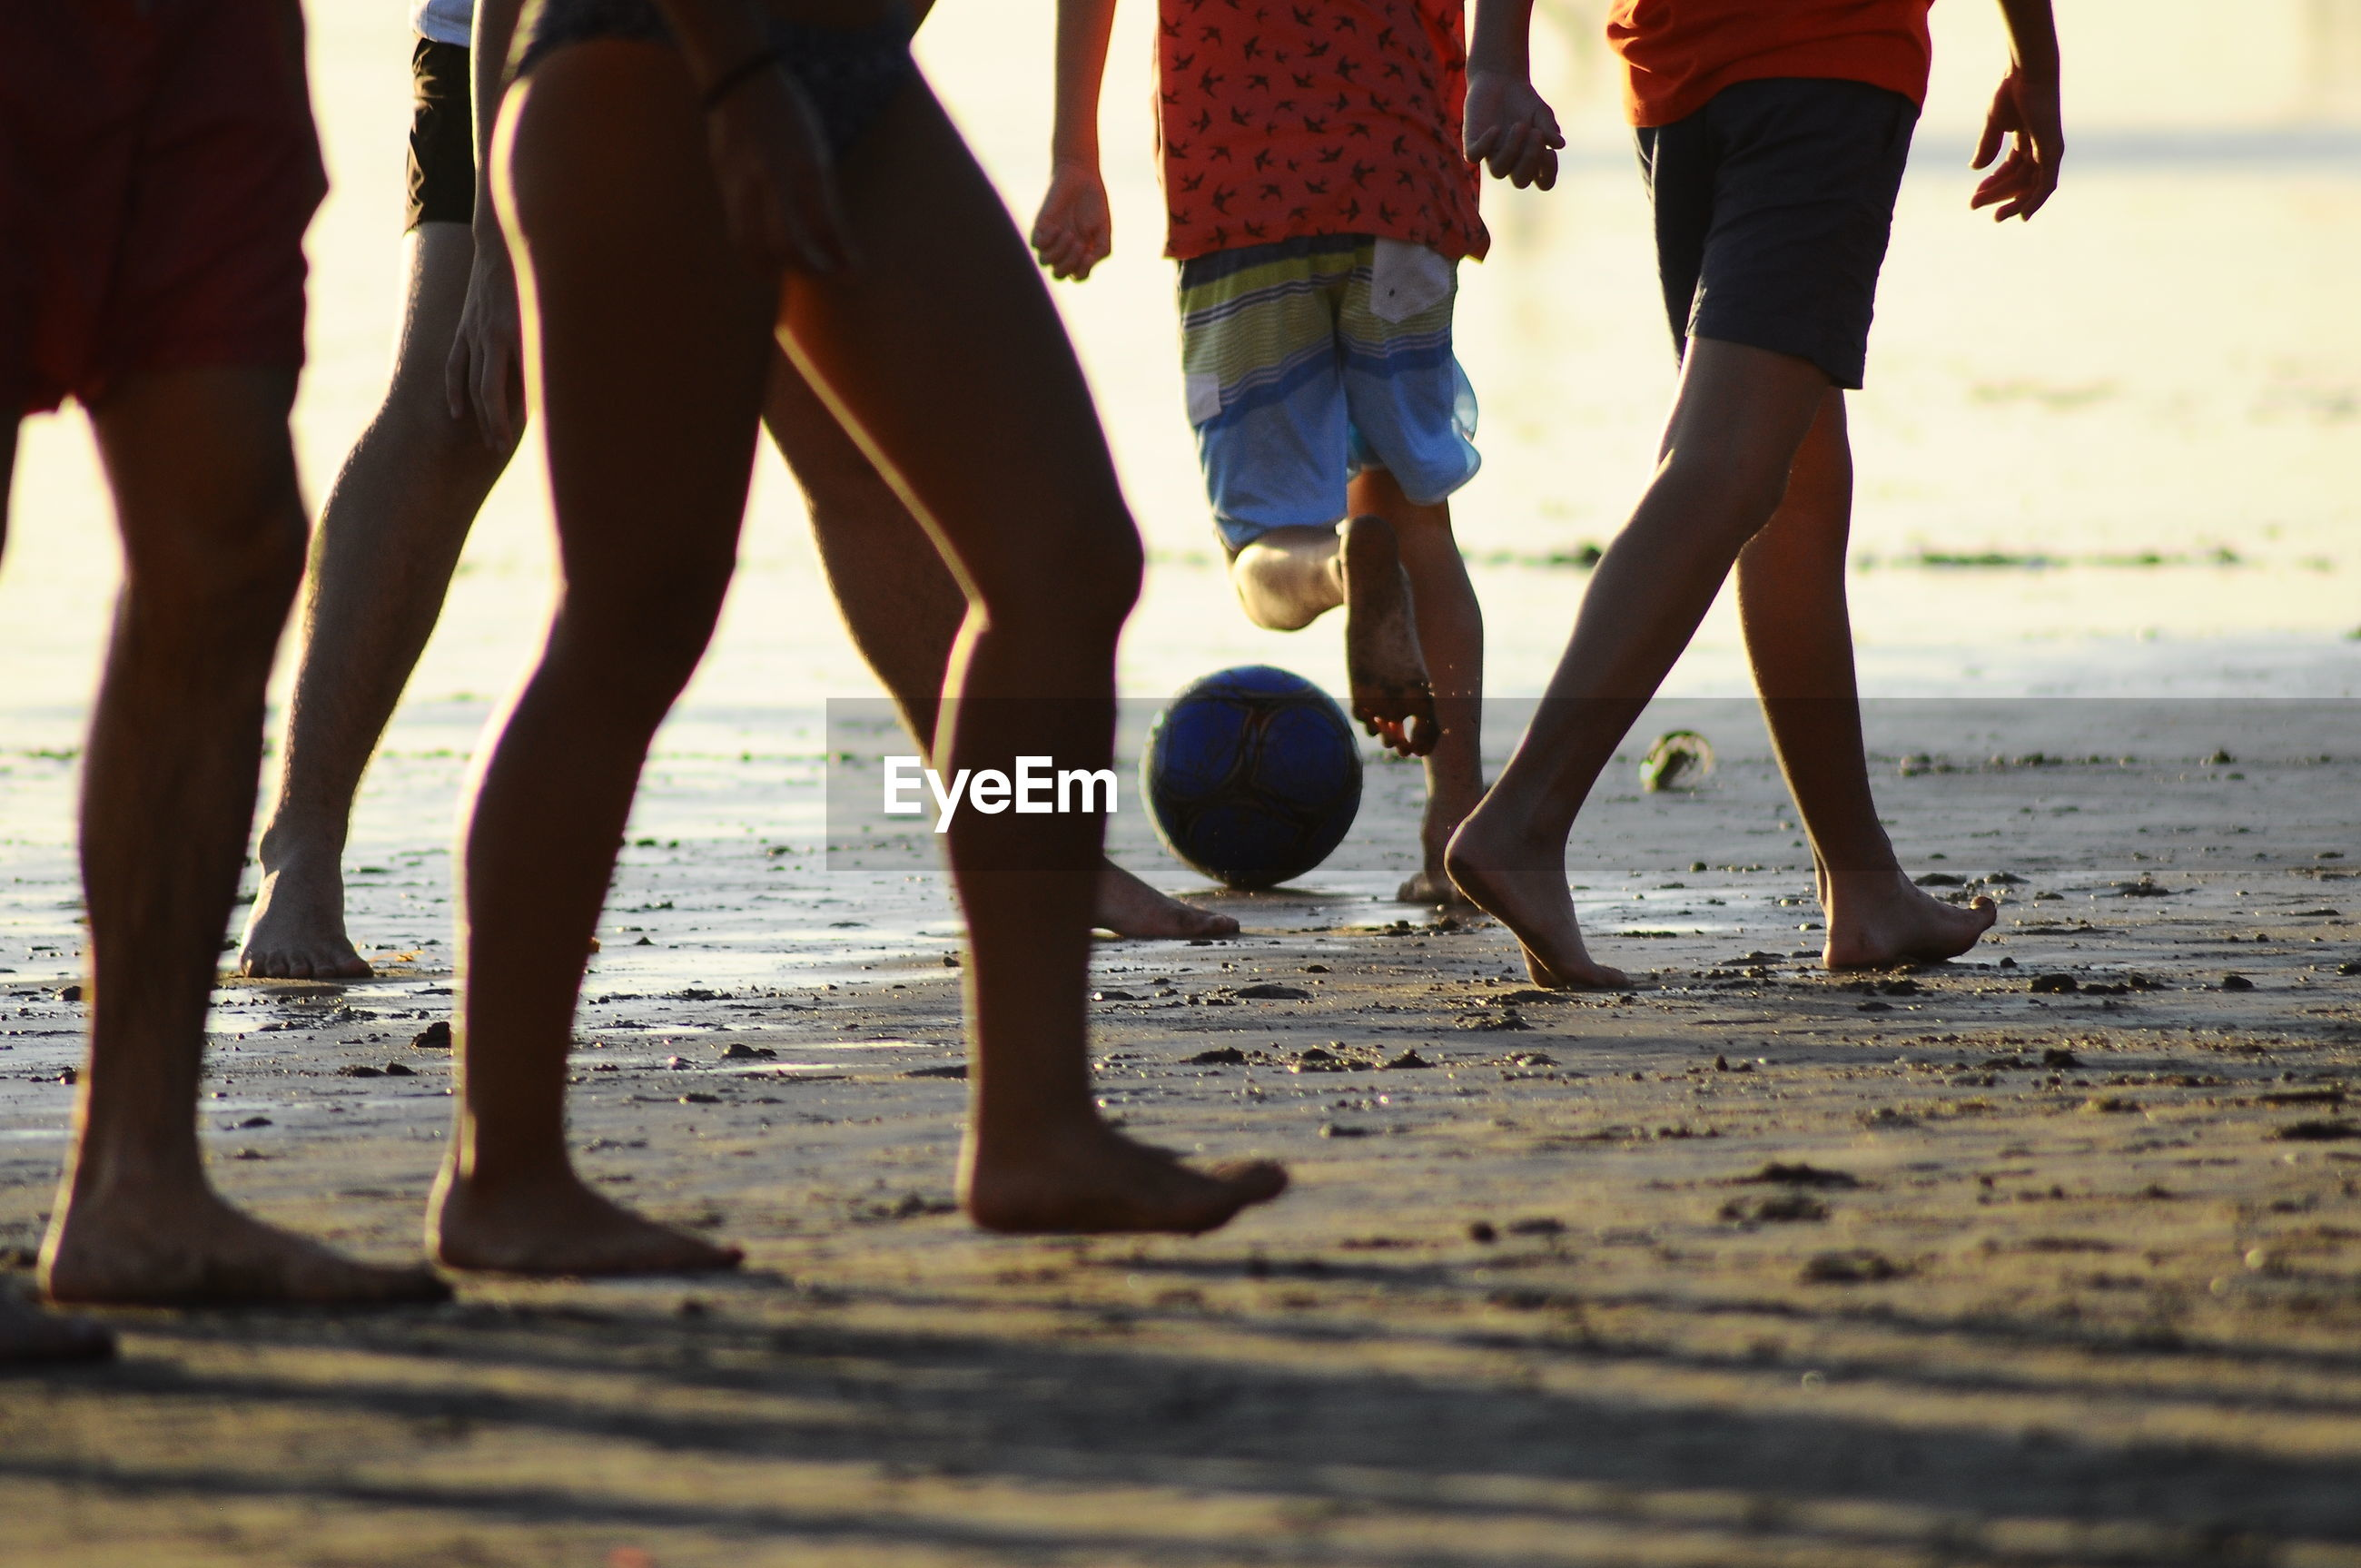 Low section of people playing soccer ball on beach